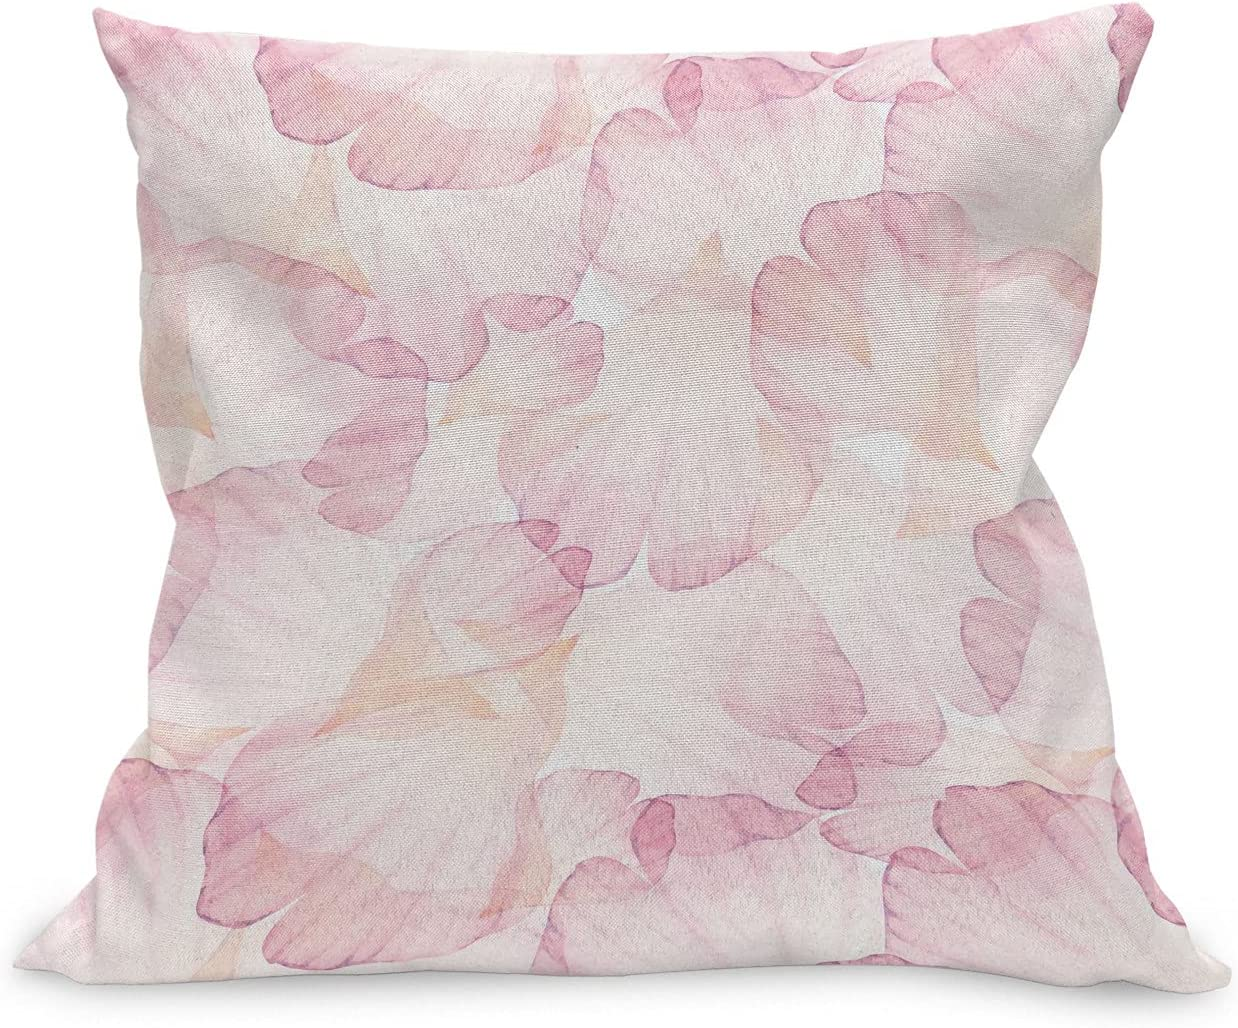 Ambesonne Pastel Throw low-pricing Pillow Cushion Pet Pink Flower Soft Max 74% OFF Case